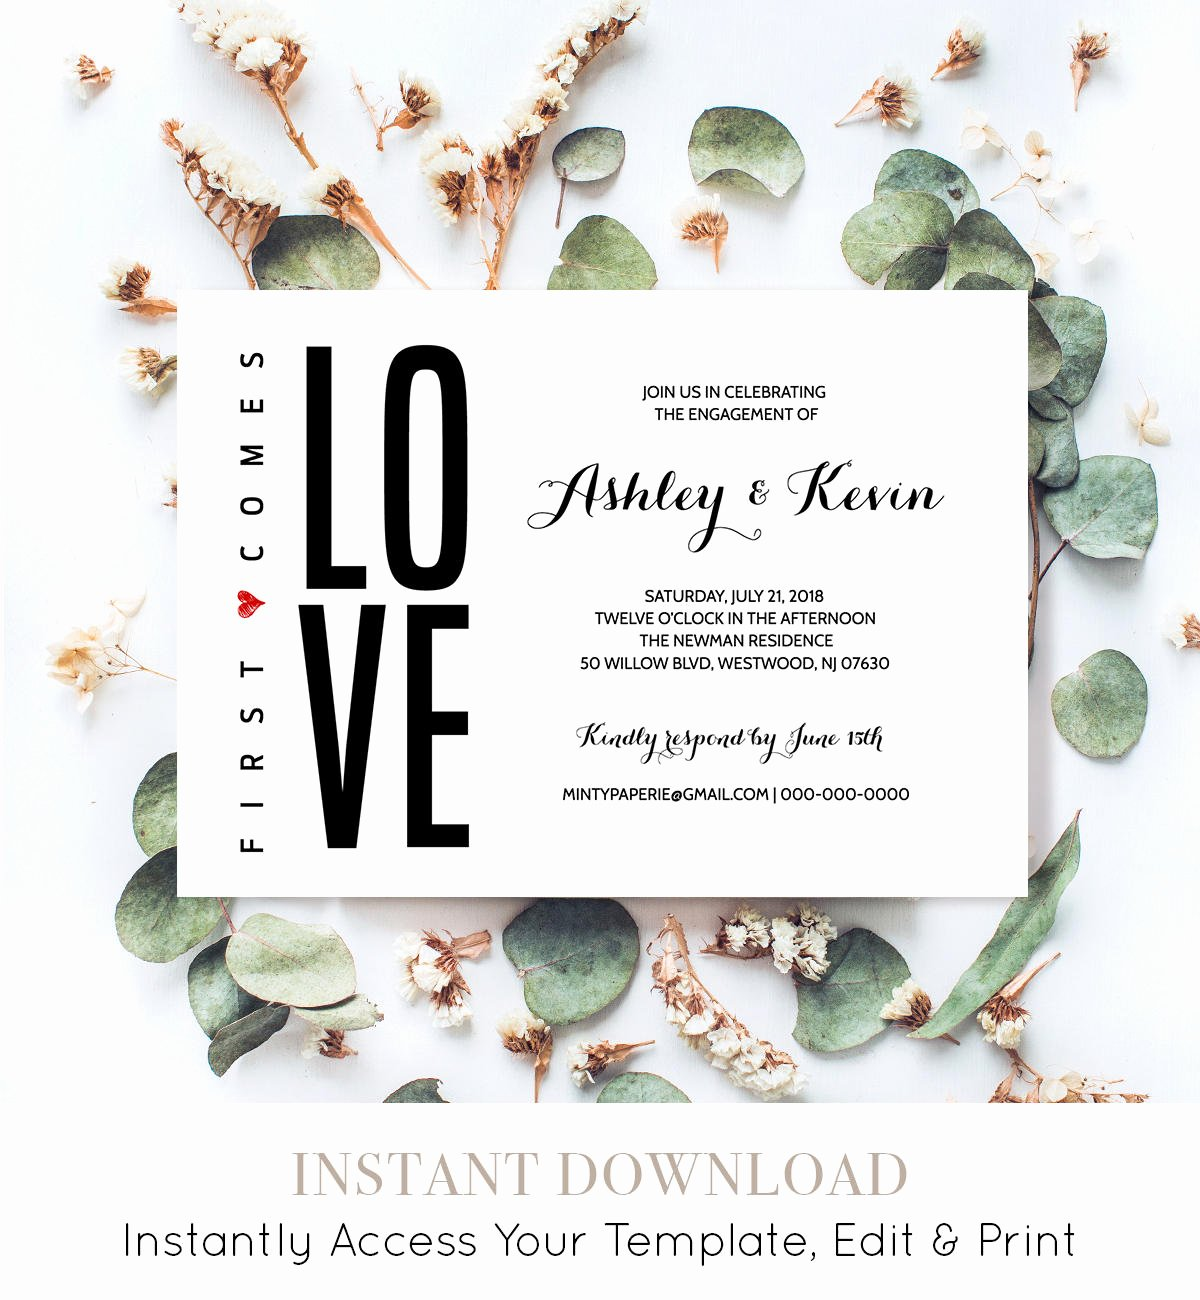 Free Printable Engagement Party Invitations Luxury Printable Engagement Party Invitation Template Modern